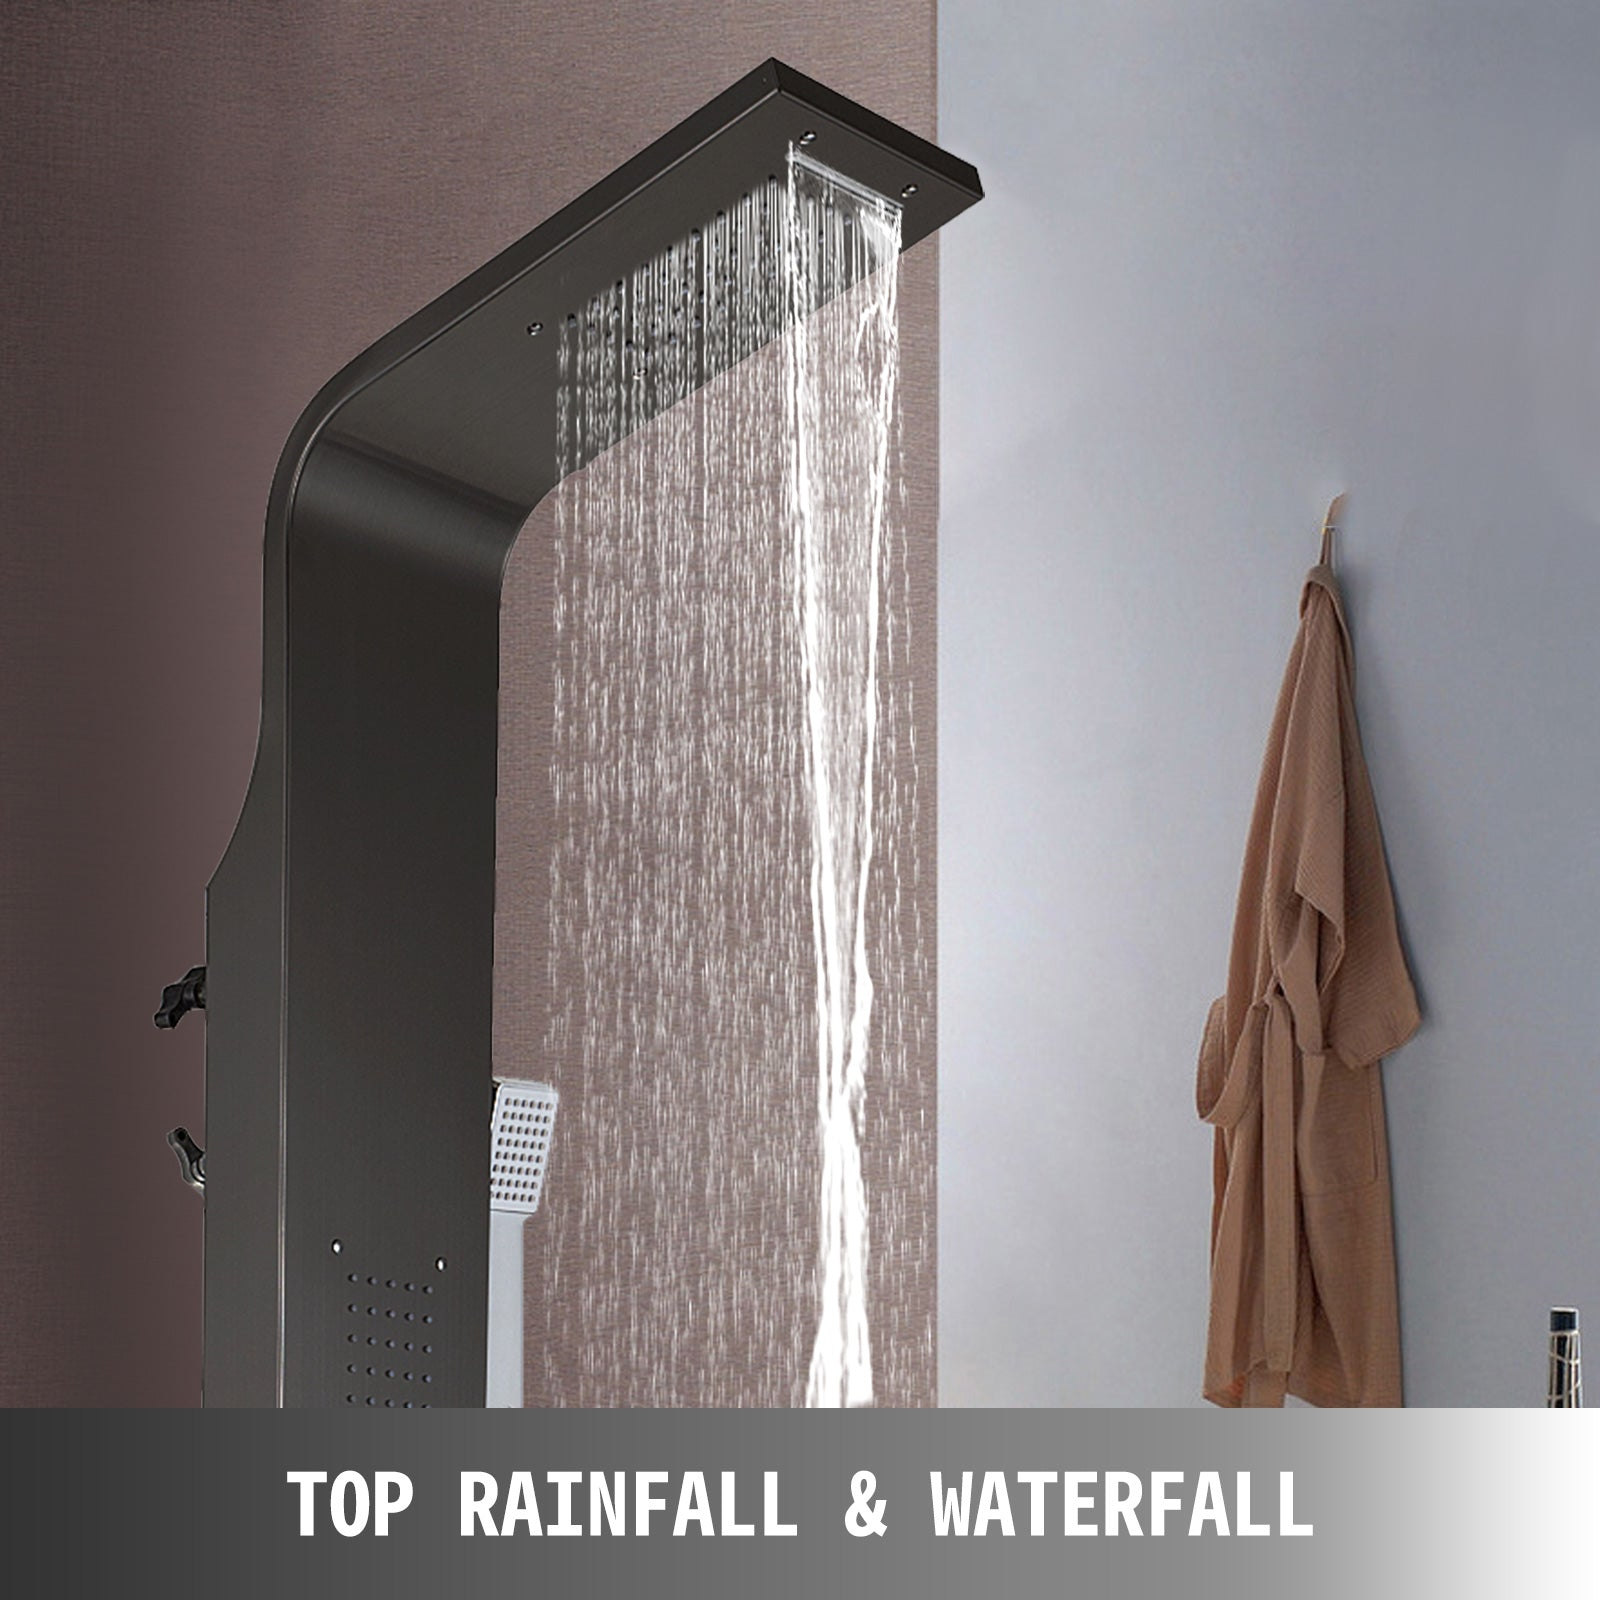 Stainless Steel Shower Panel Tower Waterfall&rain W/ Massage System Body Jet Tap